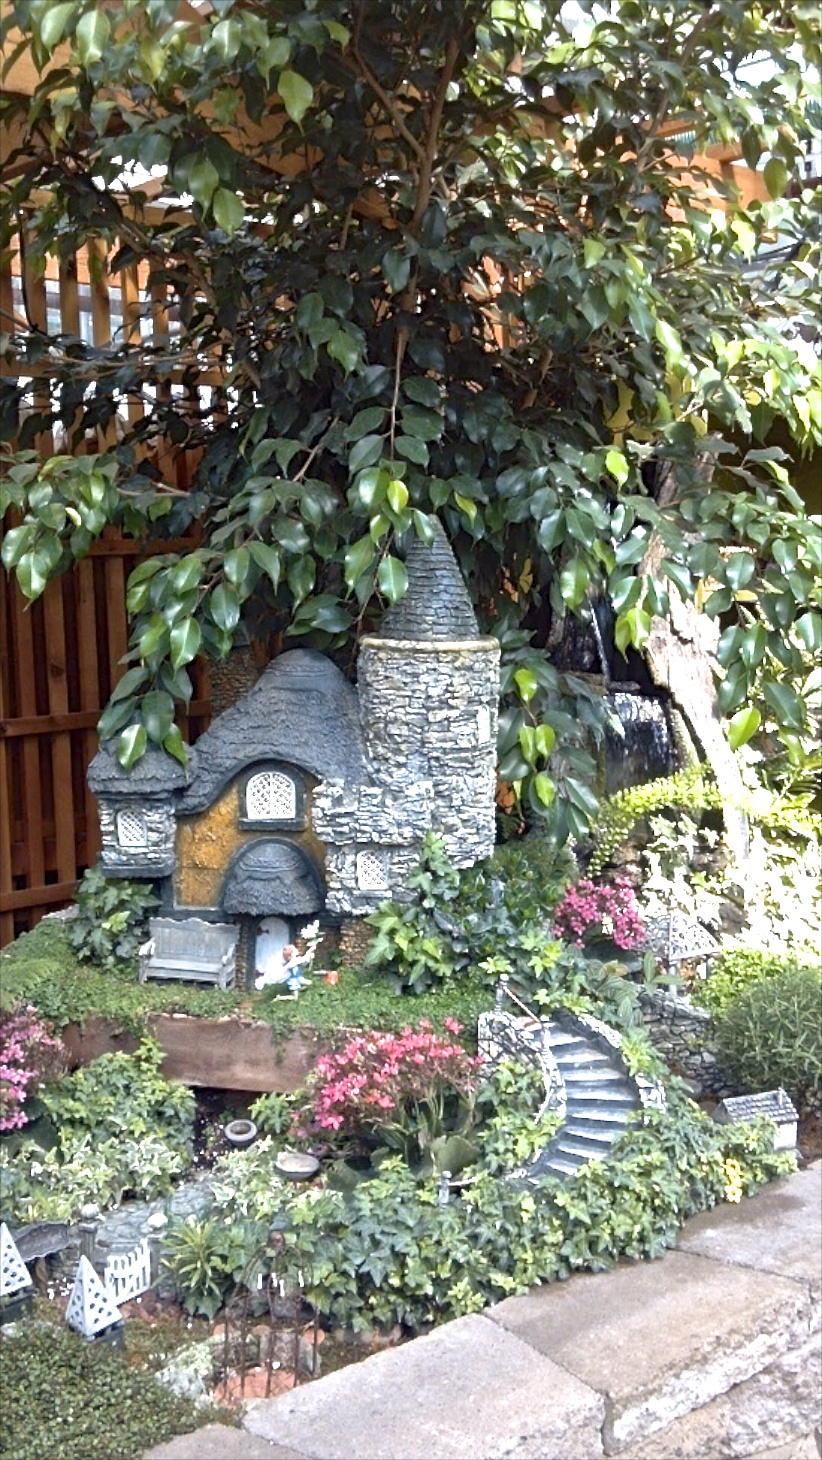 Tonkadale Garden Center Fairy Garden